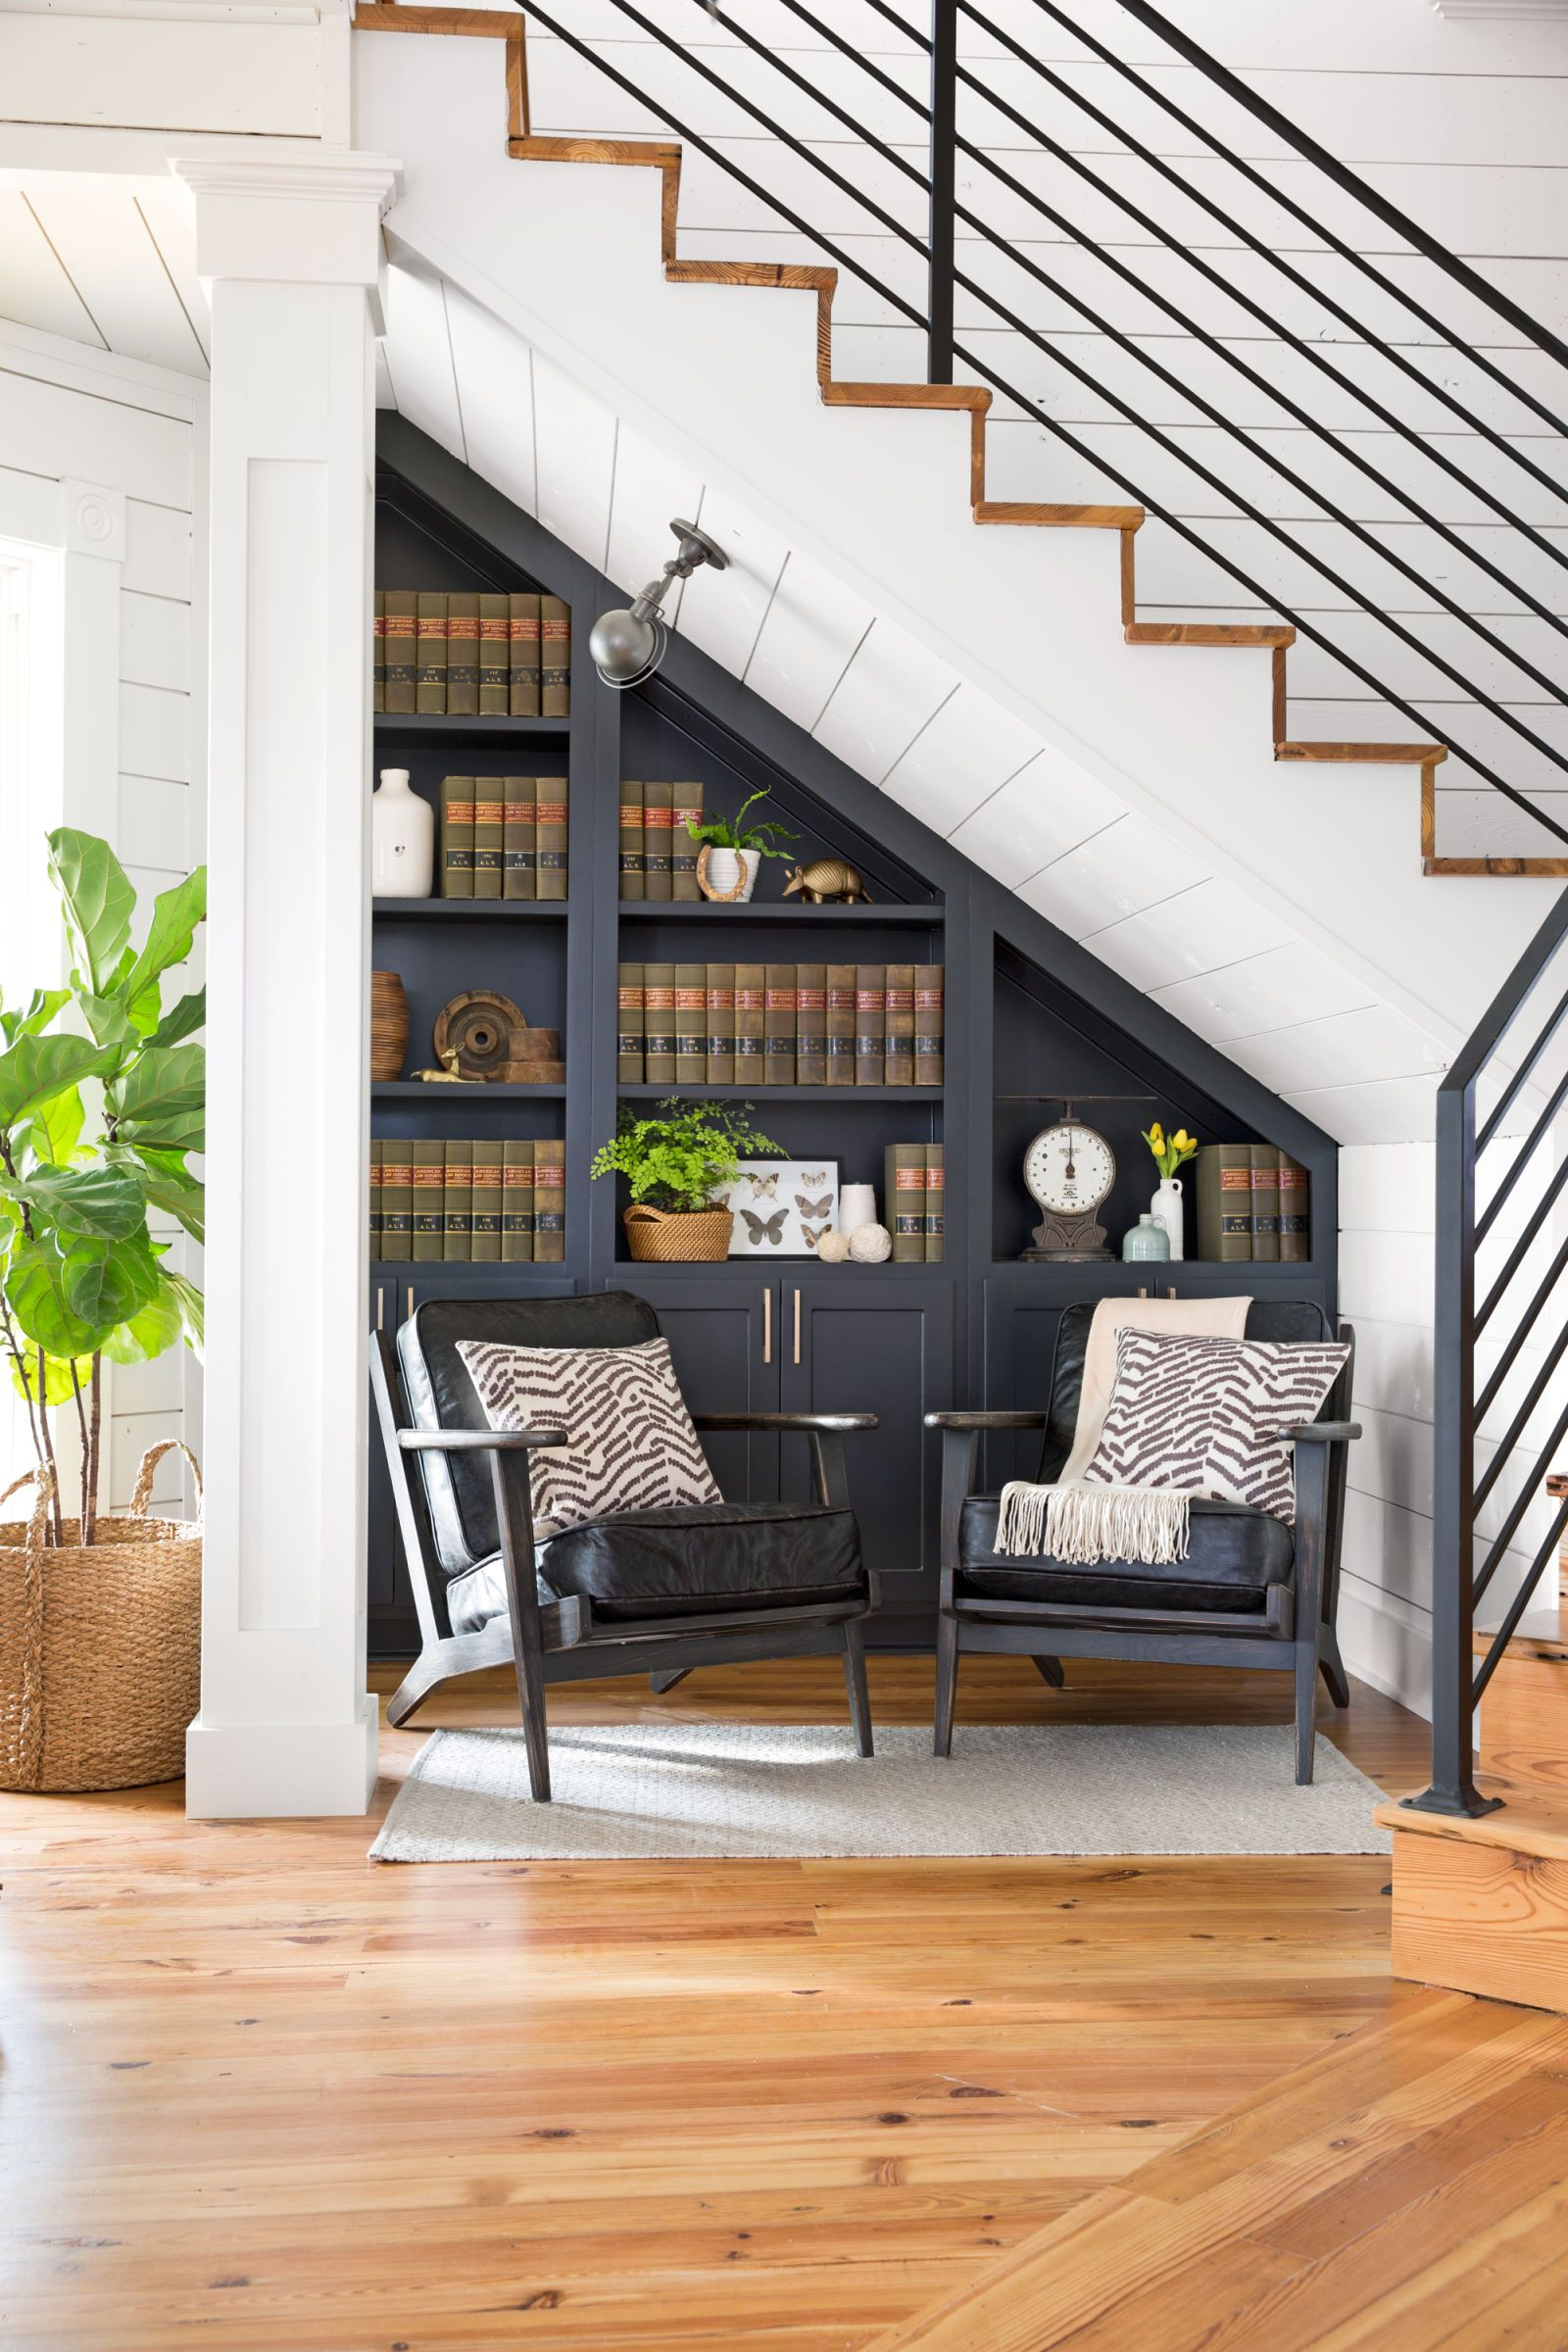 The area under the stairs is often wasted space says joanna gaines we transformed this spot once a closet with book storage on one side into a library